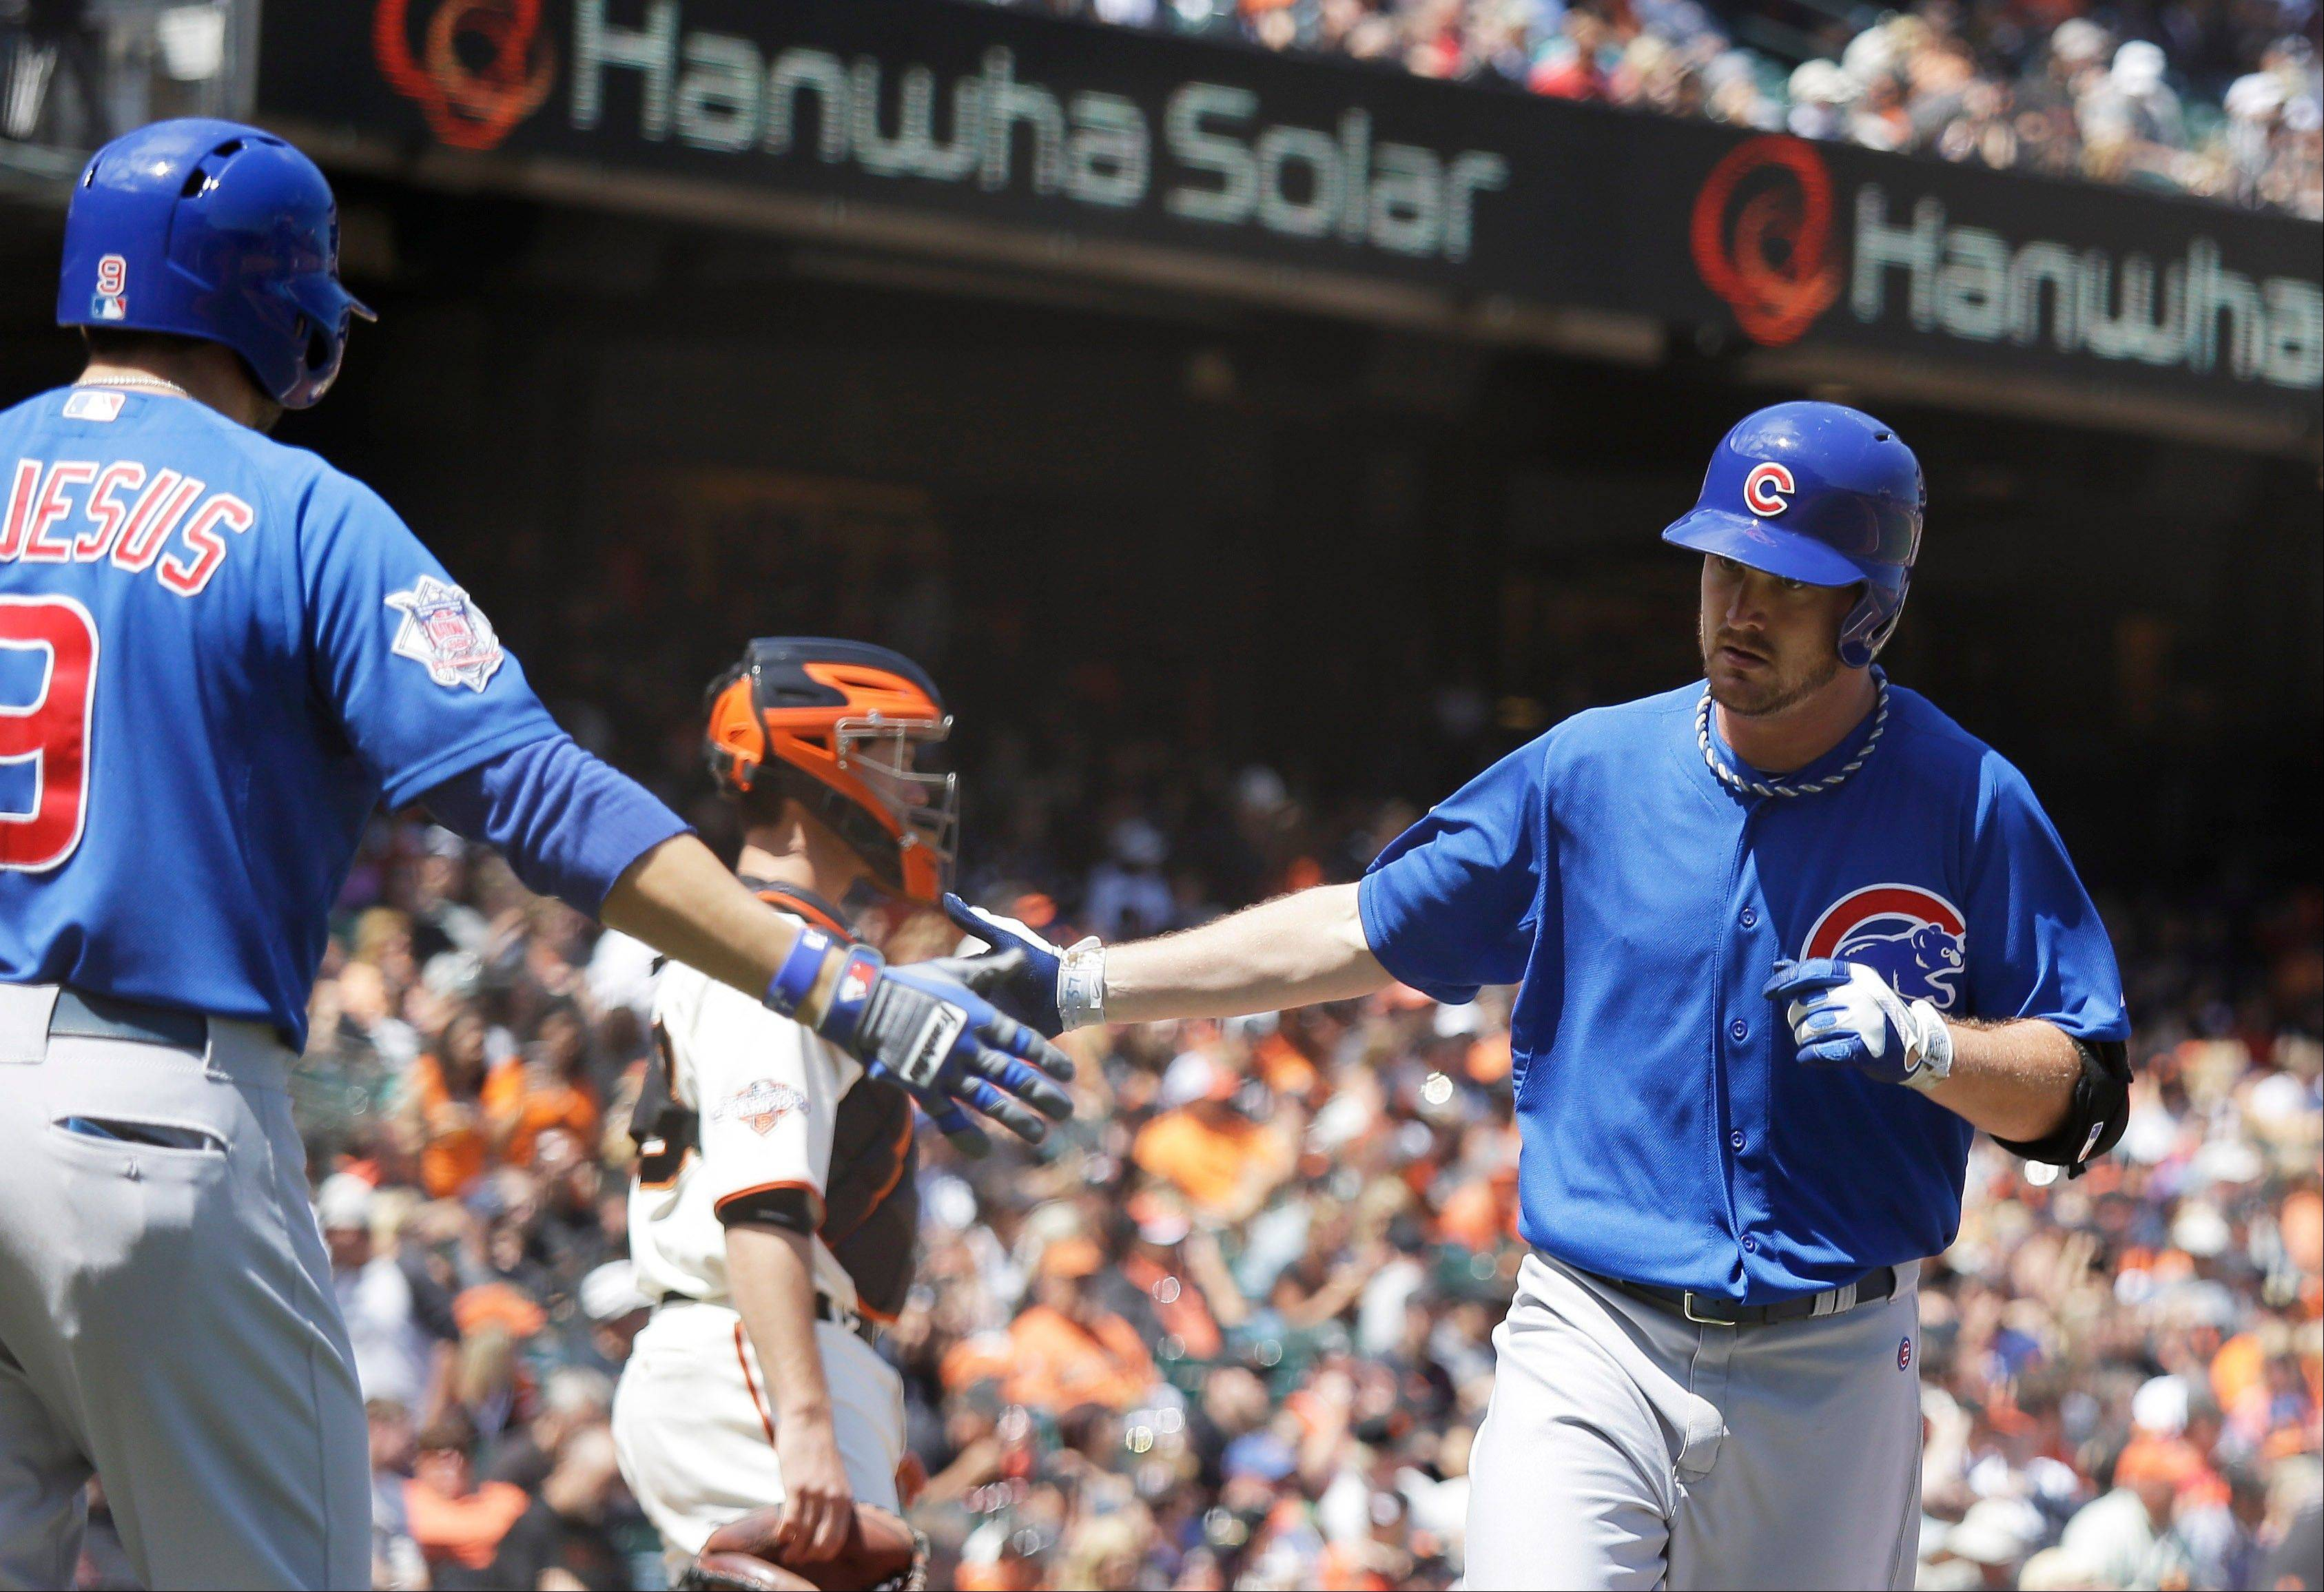 Cubs pitcher Travis Wood, right, is greeted by teammate David DeJesus, left, after hitting a home run off San Francisco Giants starting pitcher Tim Lincecum during Sunday�s fifth inning.